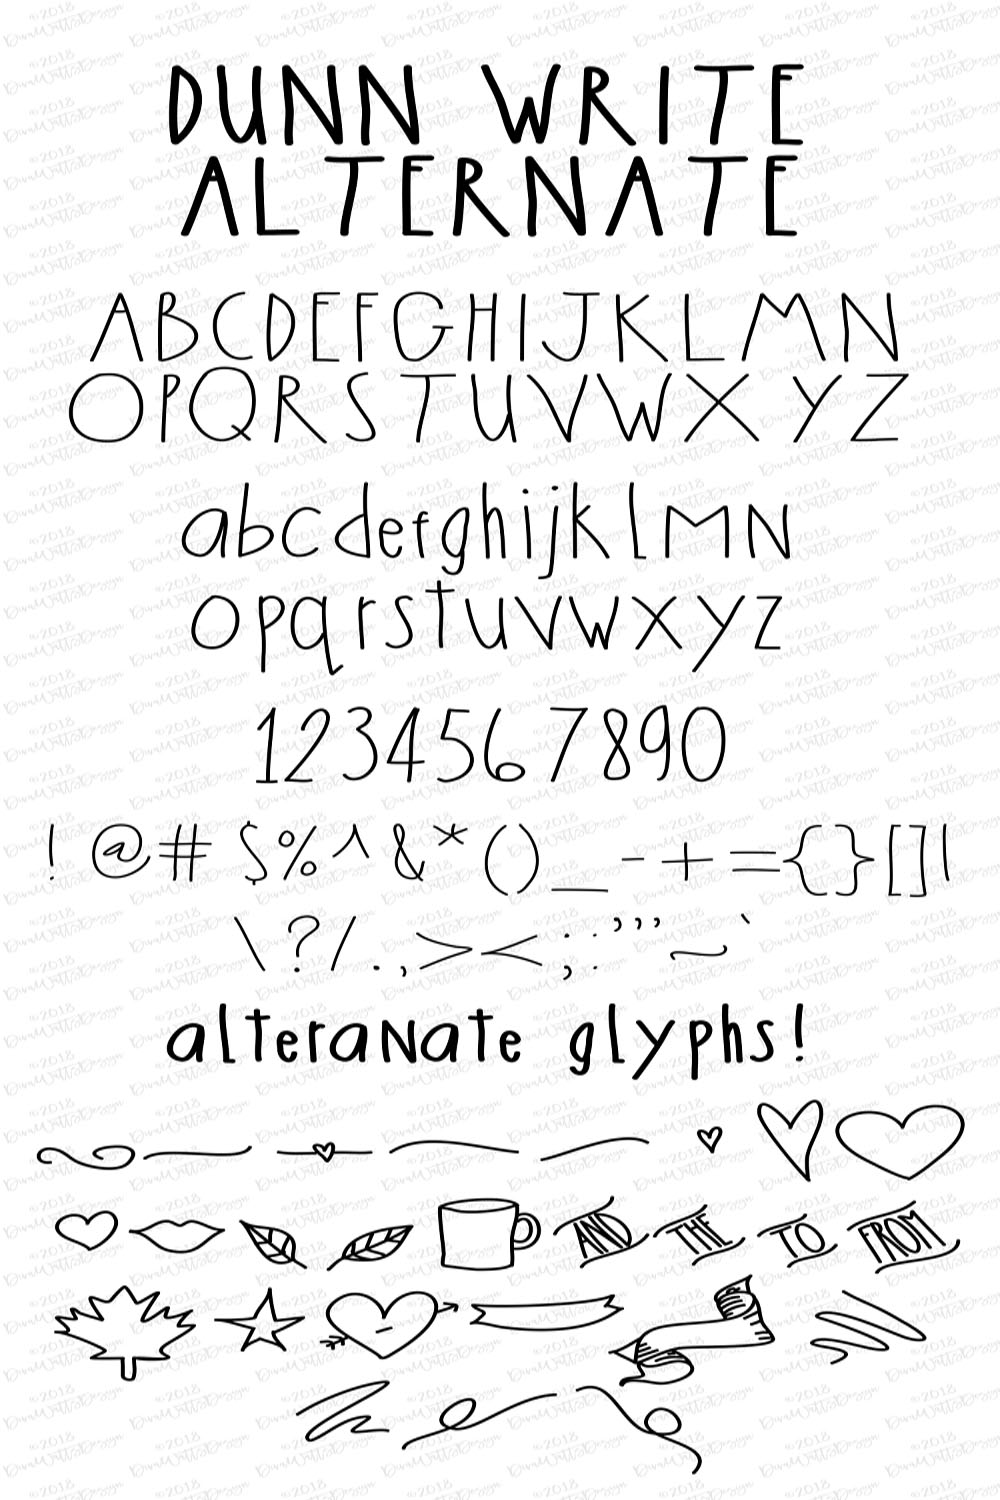 The Dunn Write Farmhouse Skinny Font Collection example image 2